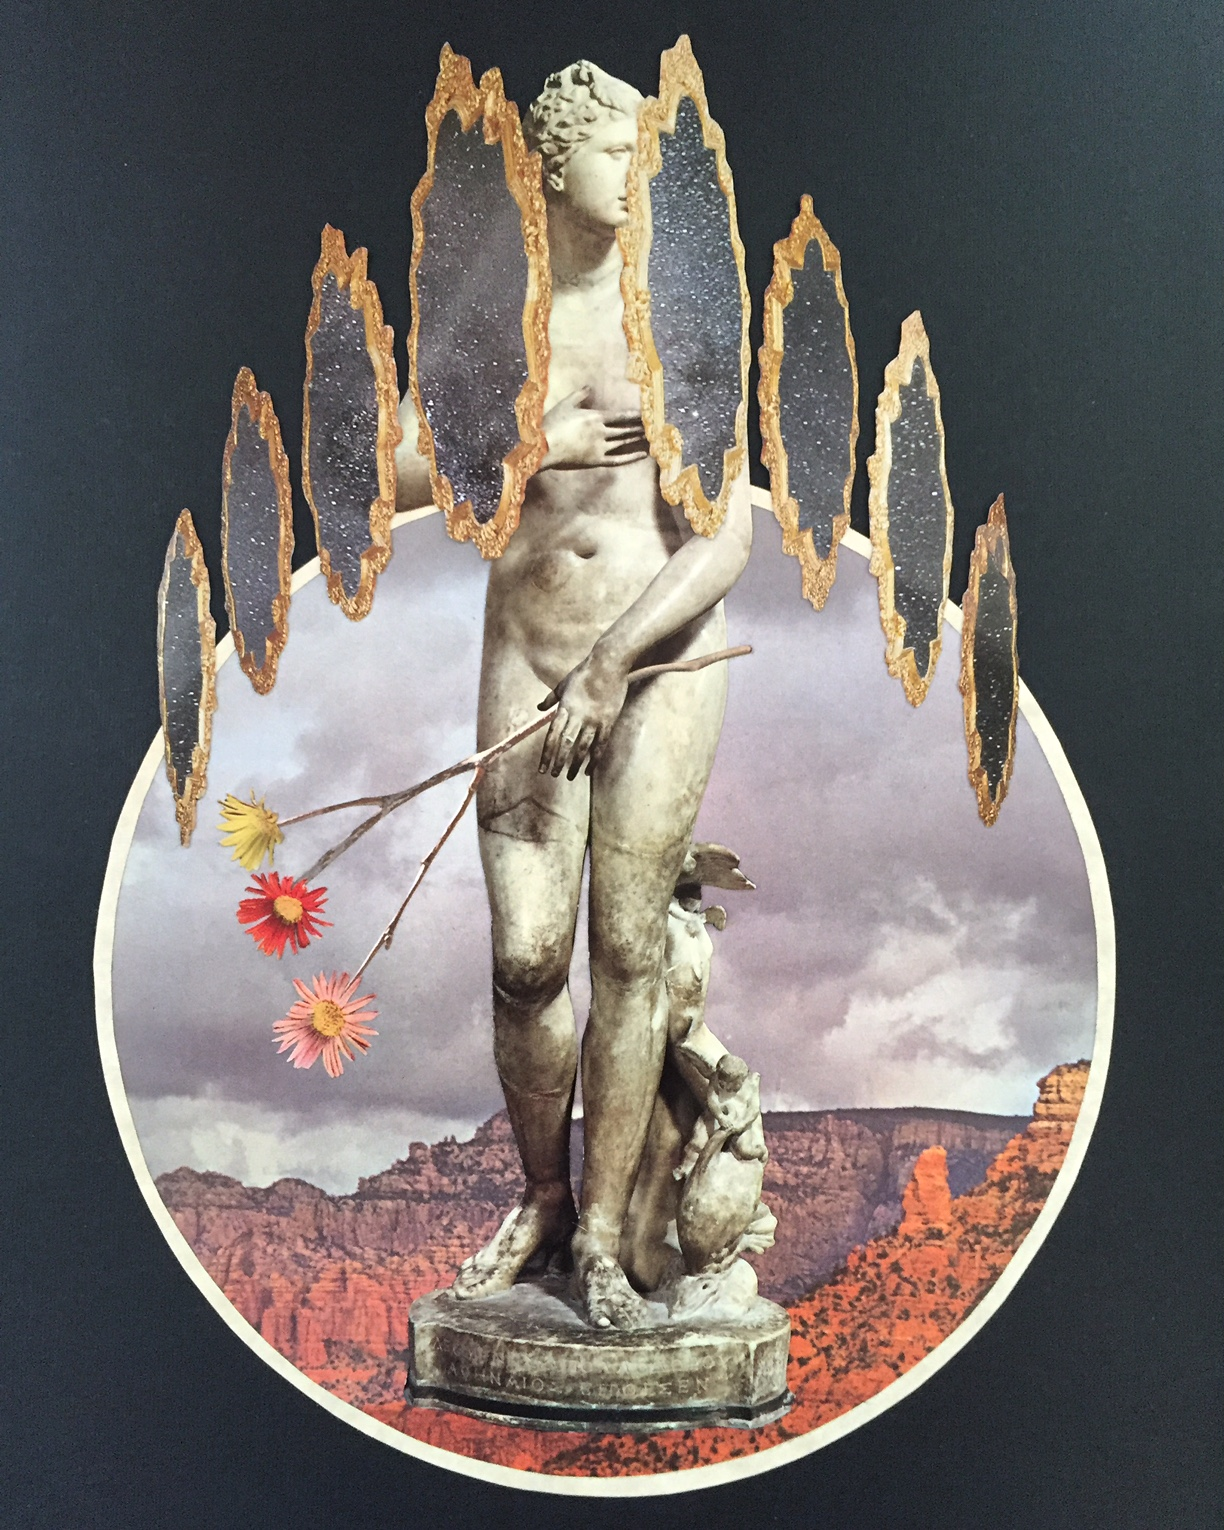 "The Broken Symmetry Of Autumn   10"" x 13"" Mixed Media Paper Collage On Found Book Cover"